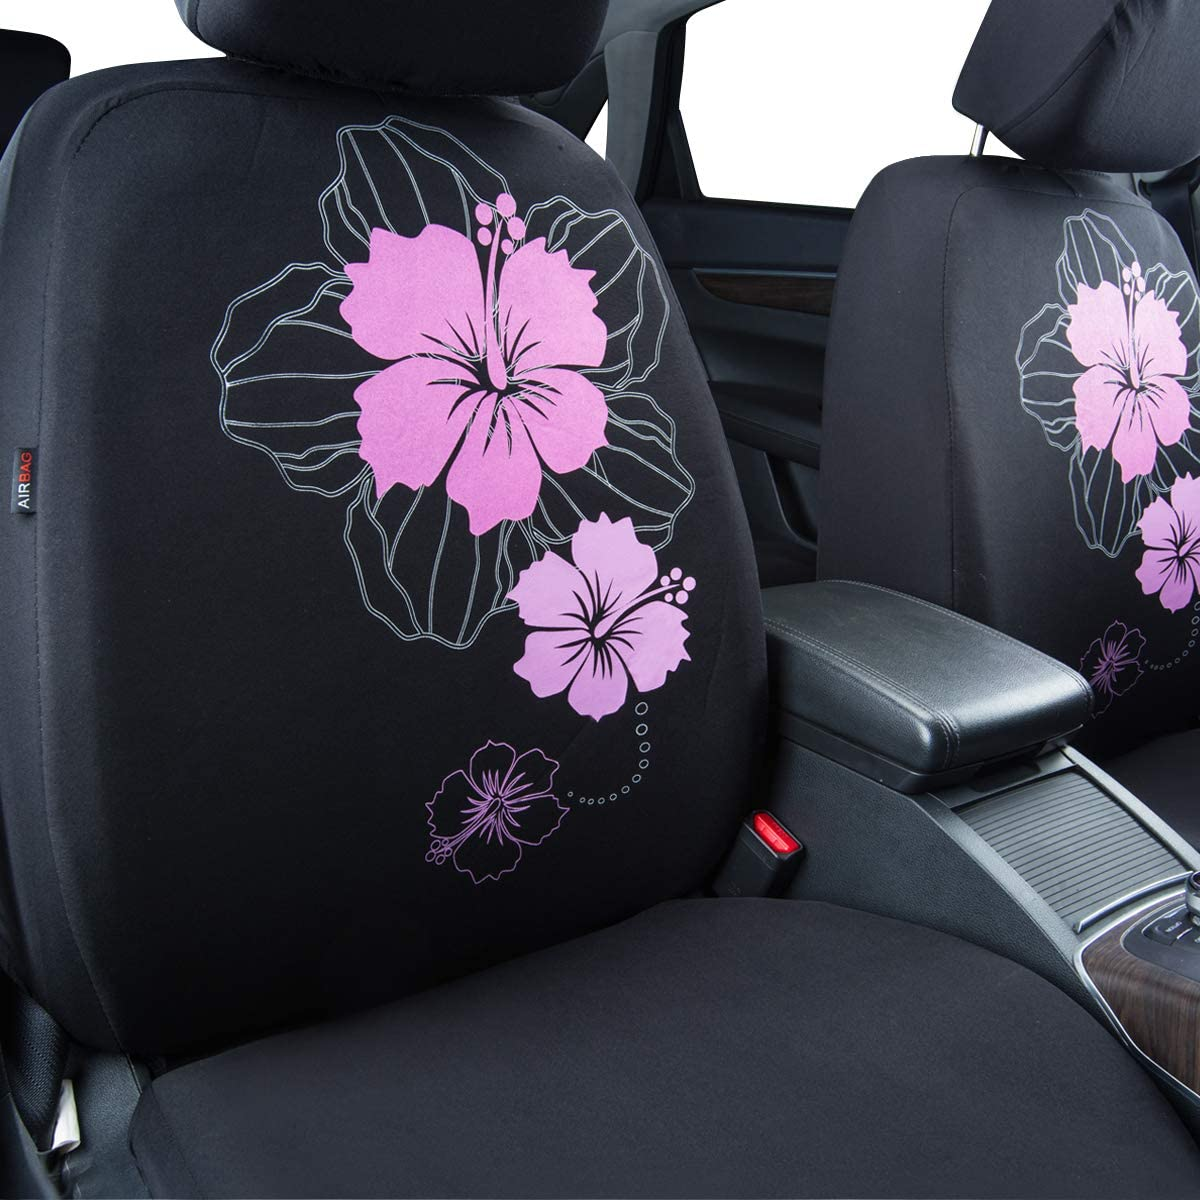 Trucks Black and Purple Fit for Suvs Sedans ... Vans CAR PASS Pretty Flower Cloth Universal Seat Covers